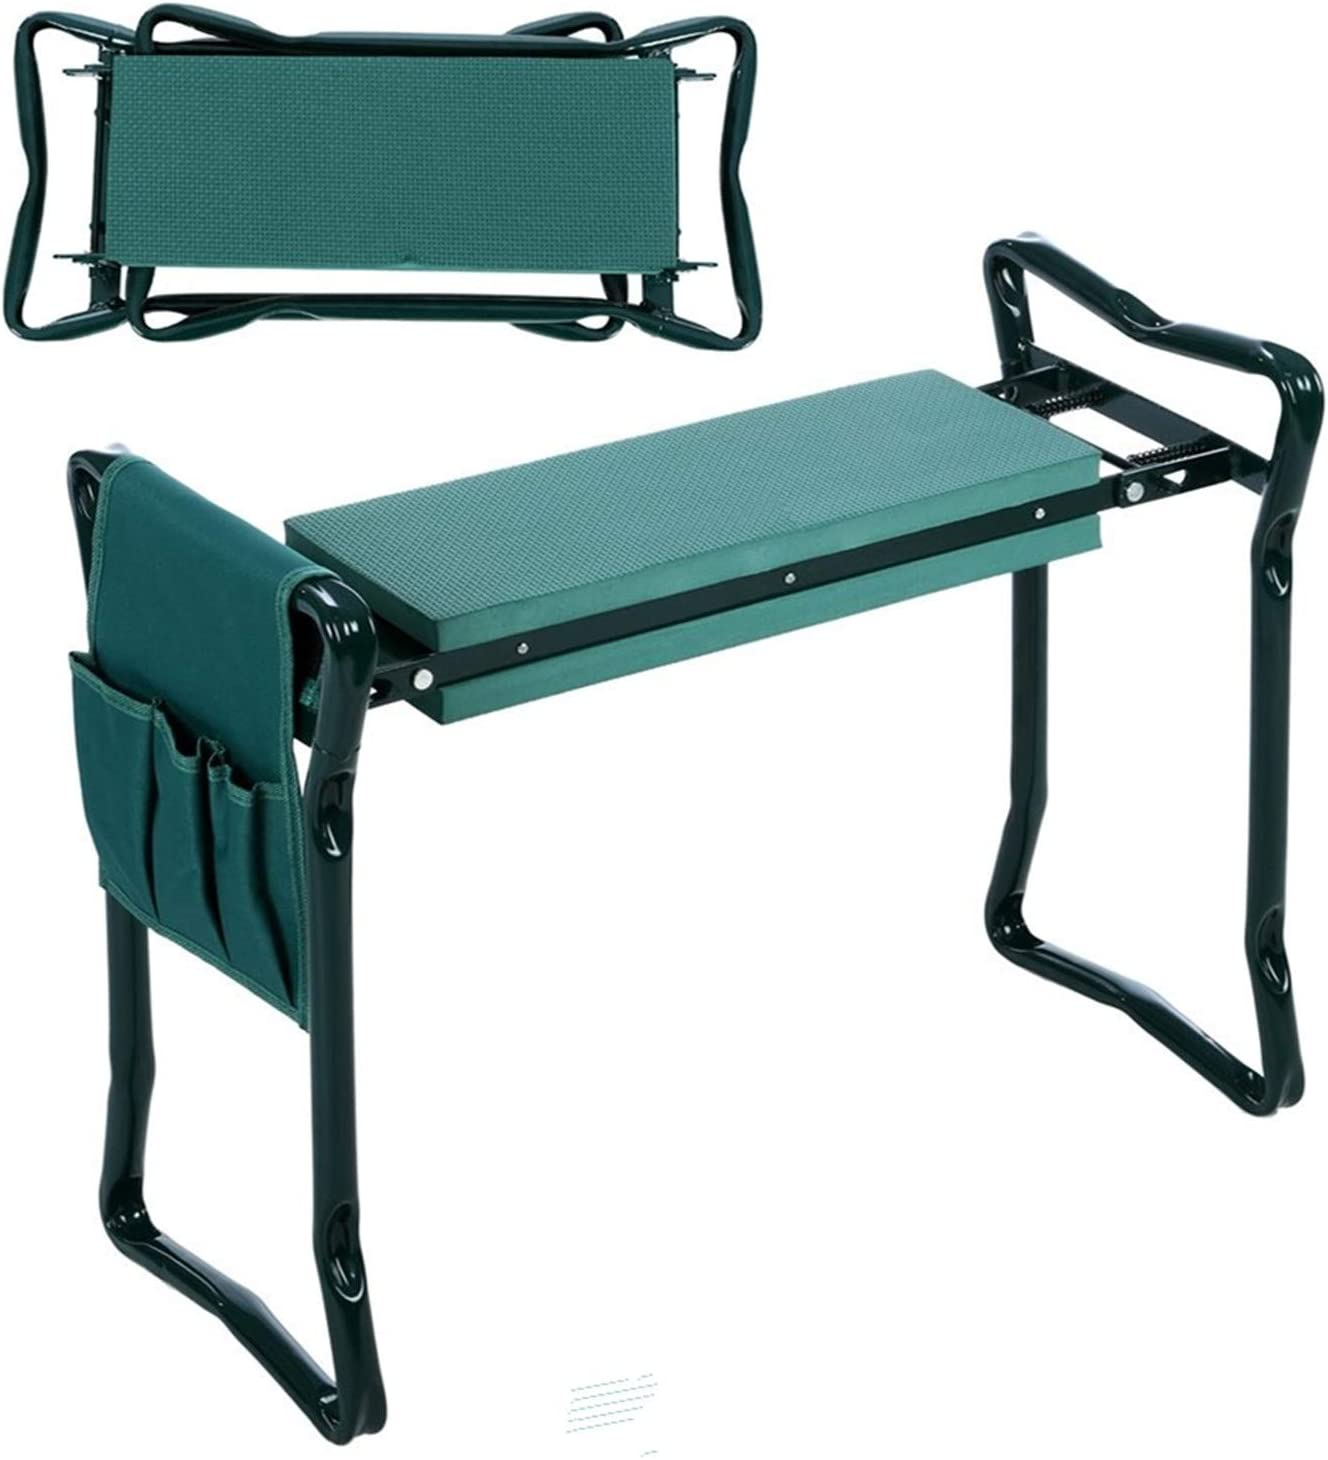 Foldable Kneeler Garden Bench Stool Kneeling Soft Cushion Seat Pad w// Tool Pouch